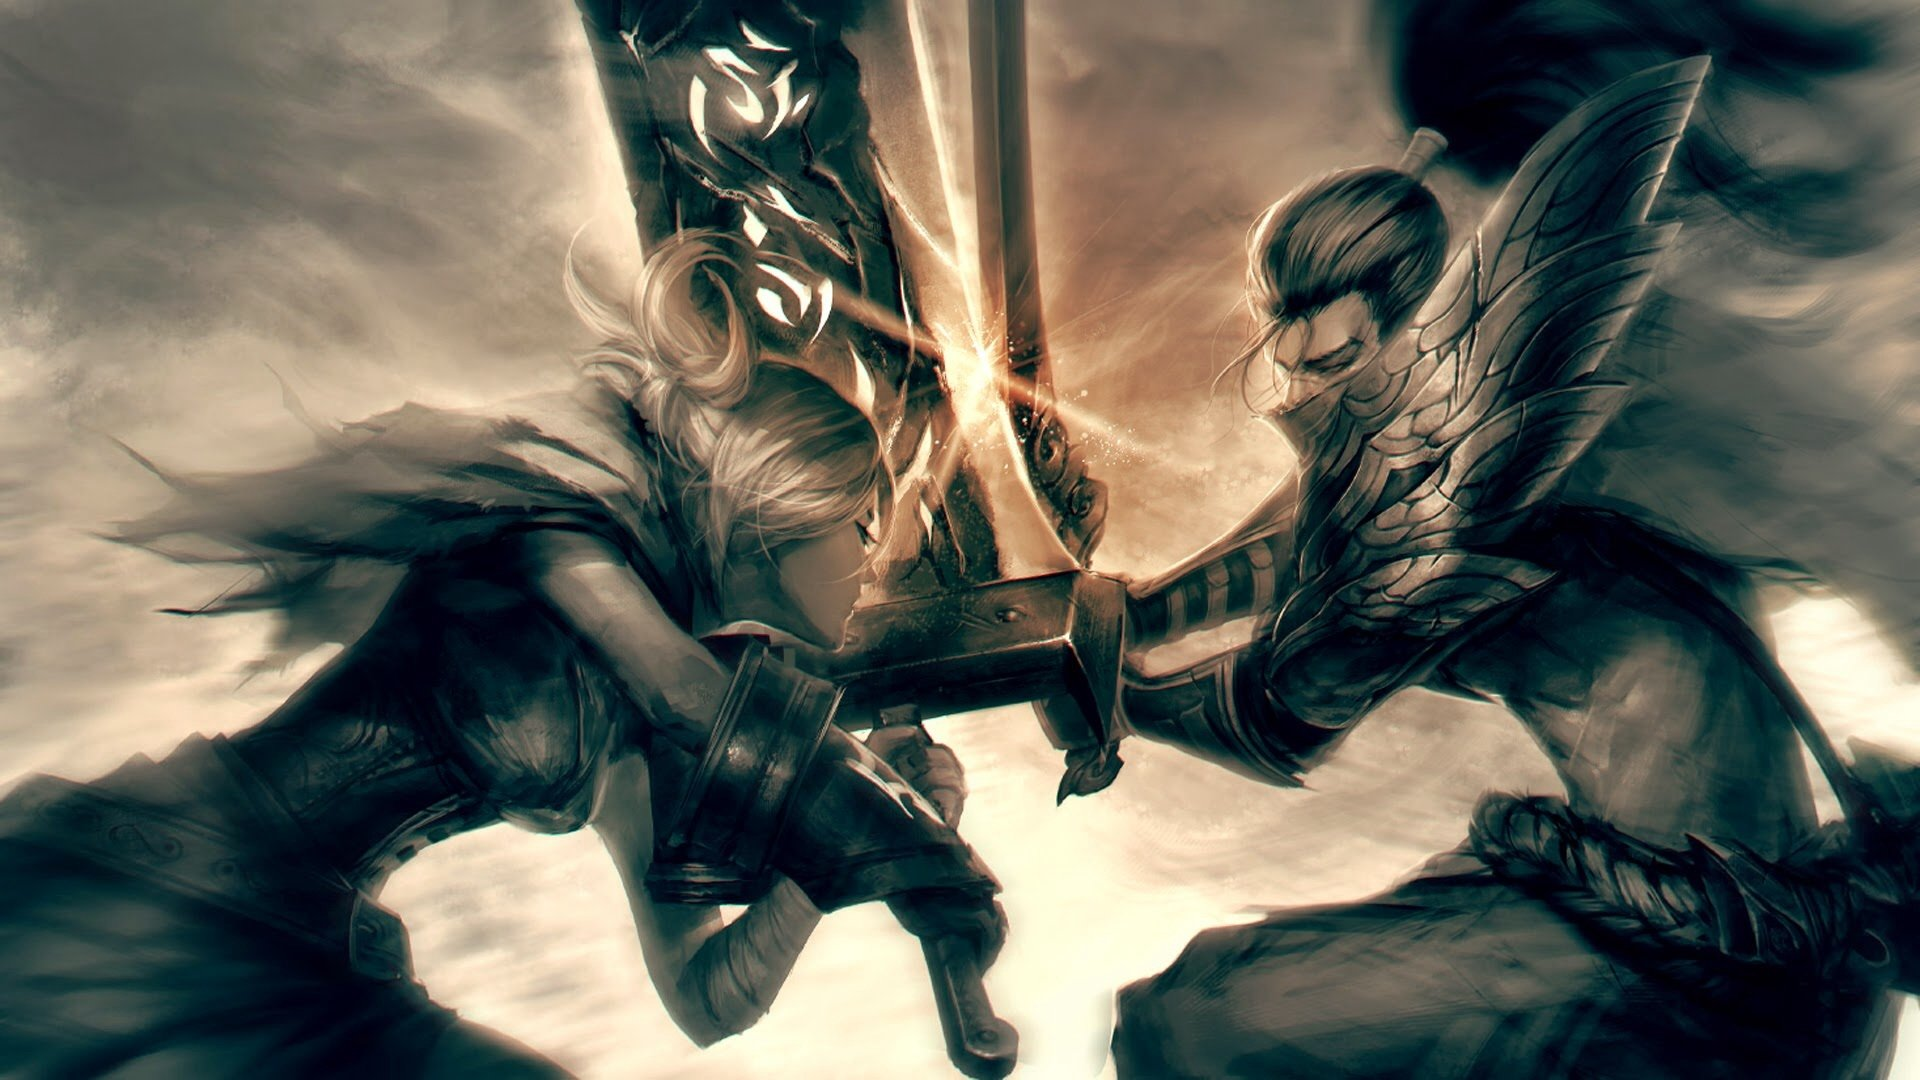 League Of Legends Sword Yasuo HD Wallpaper